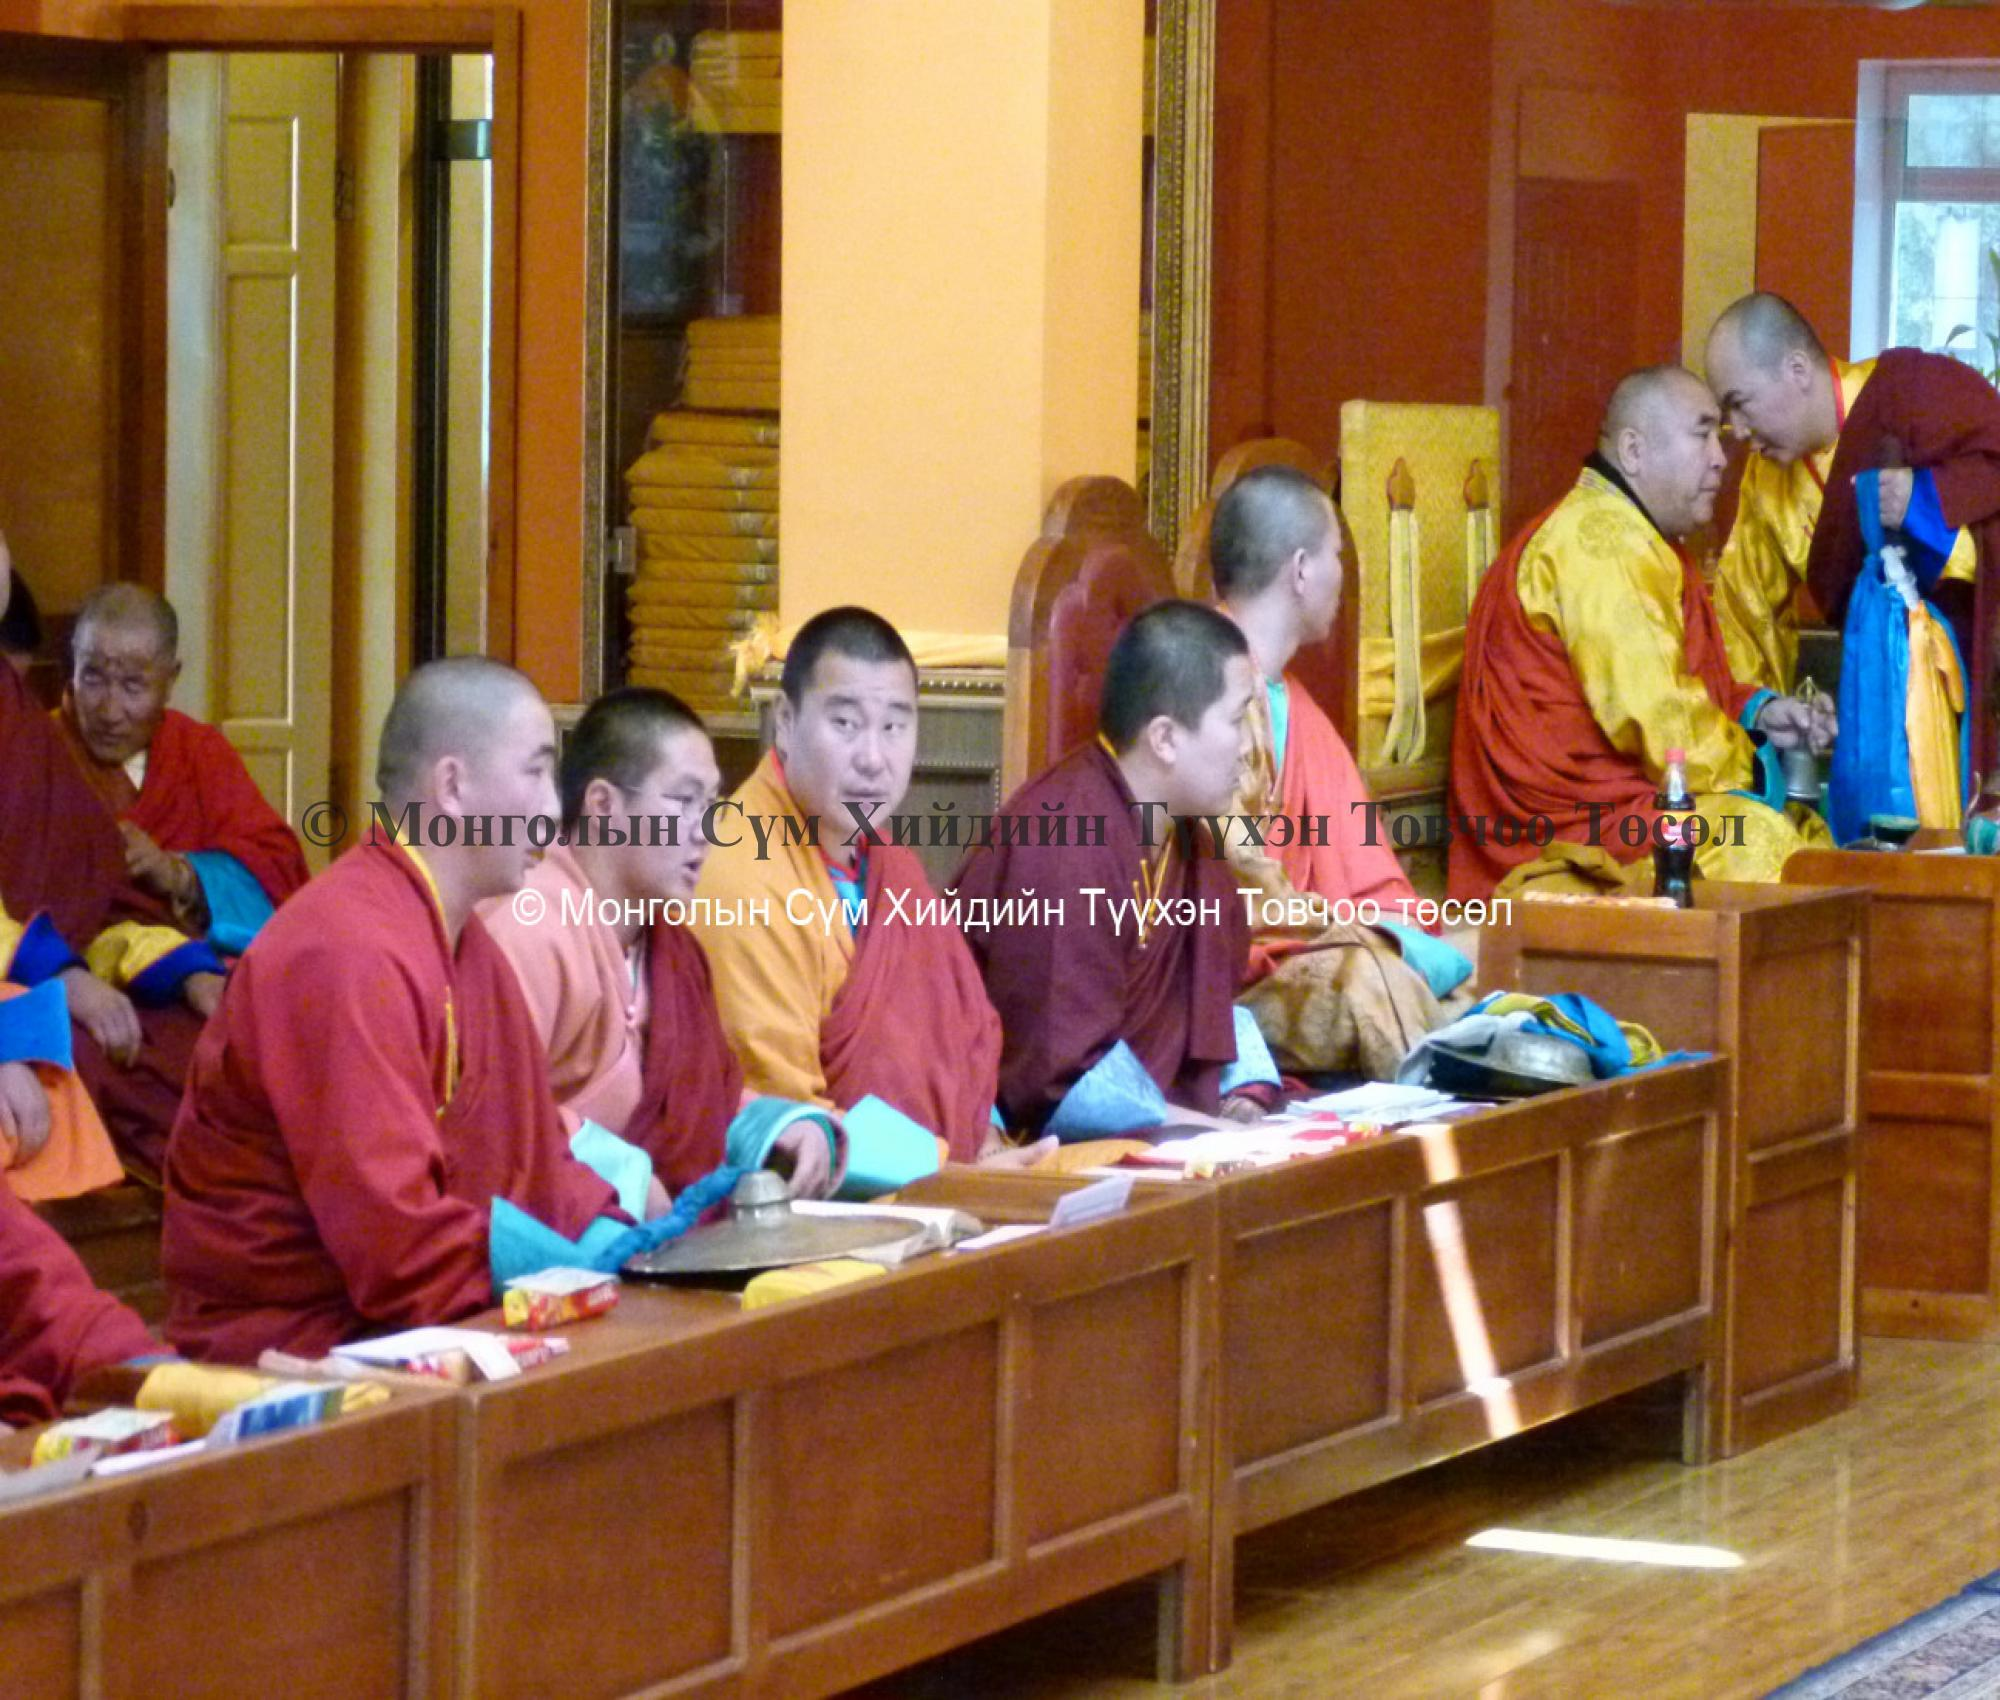 Monks at a ceremony